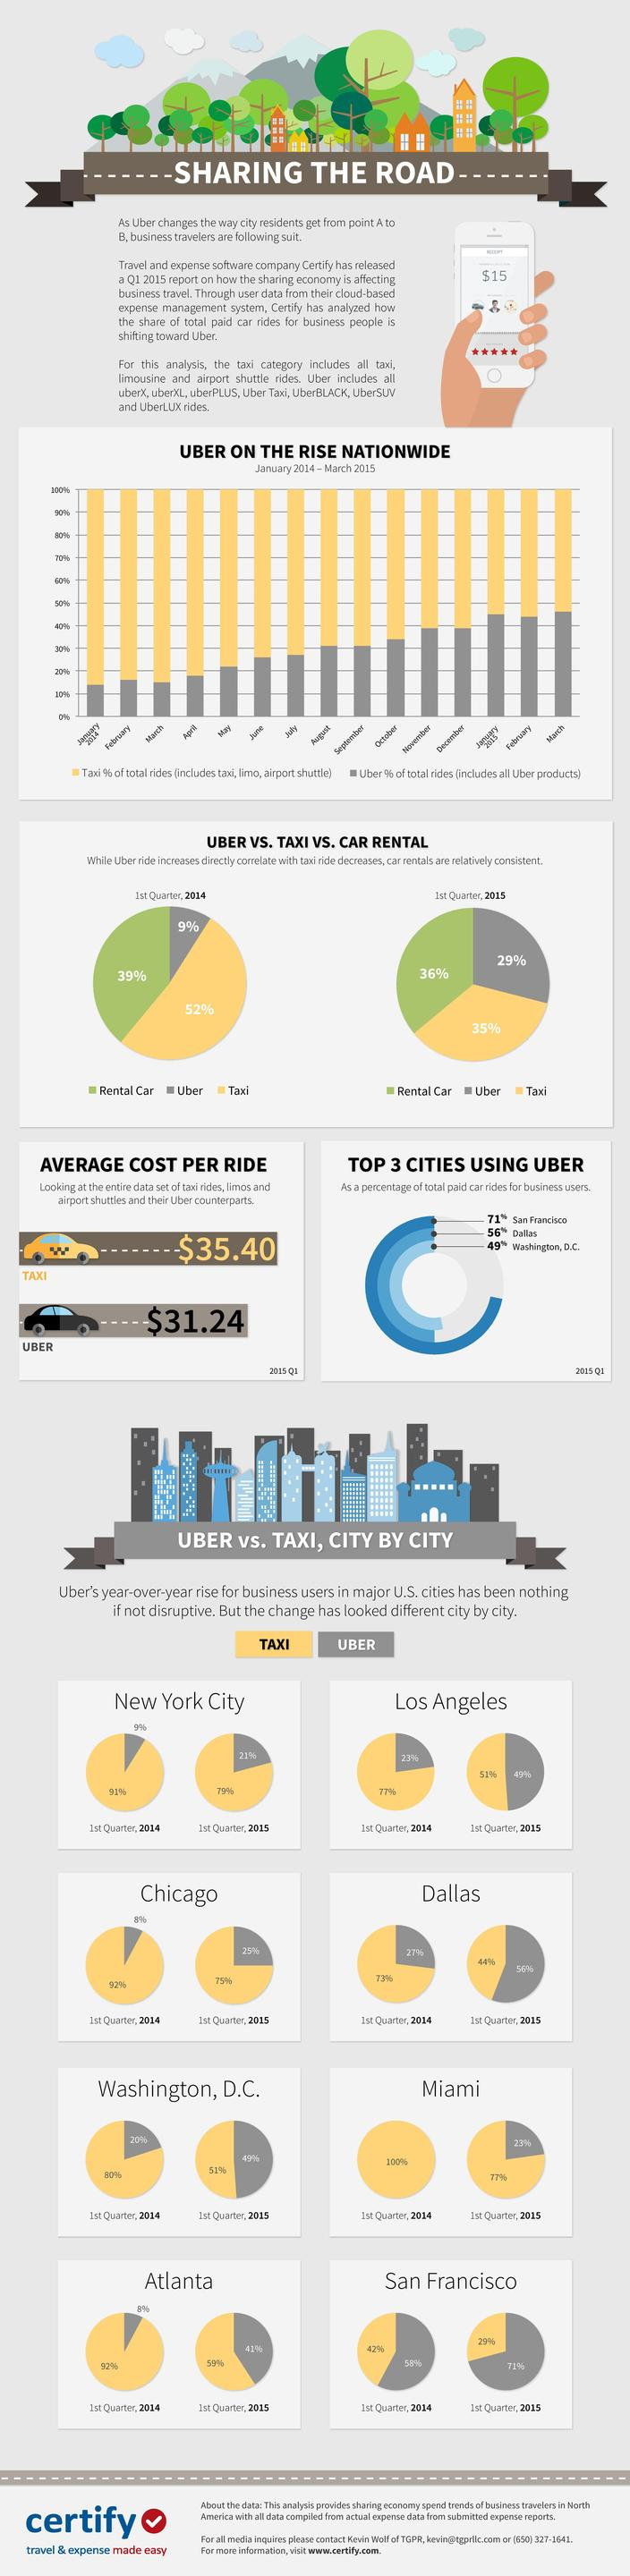 Uber vs Taxi Car rental